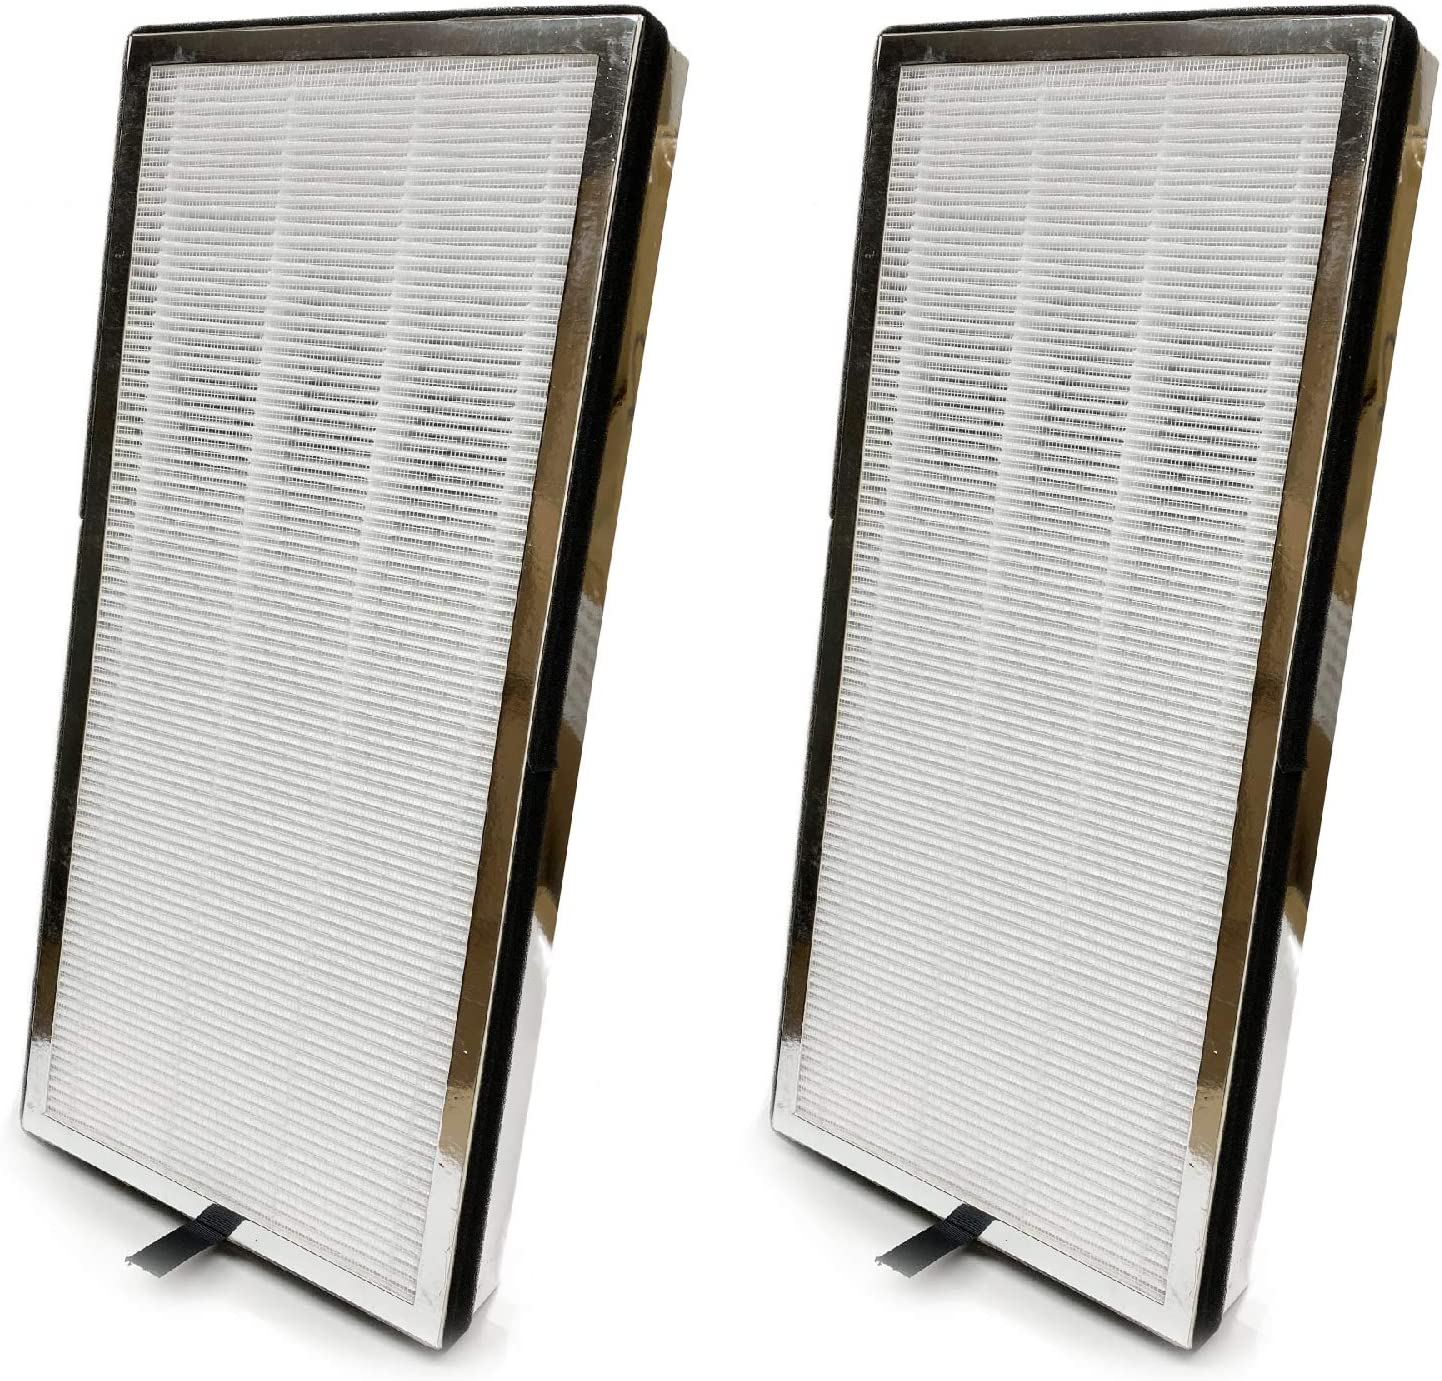 Nispira 3-in-1 True HEPA + Activated Charcoal Air Filter Replacement Compatible with Medify Purifier Model MA-40 MA-40-W MA-40-B1 V2.0. Compared to Part ME-40. 2 Units